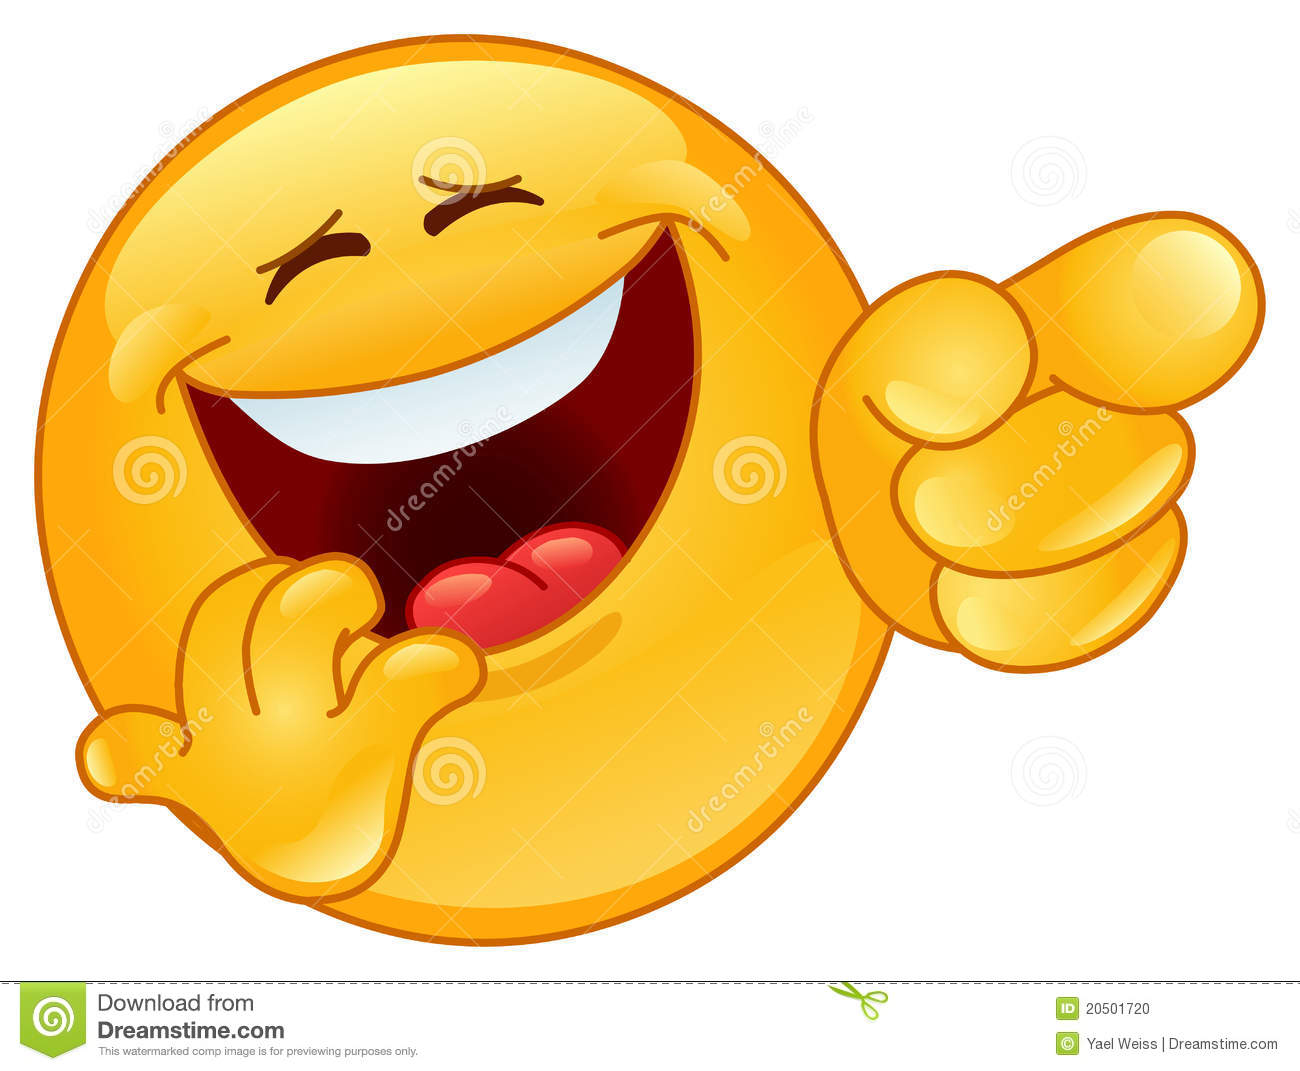 laughing and pointing emoticon stock vector illustration of humor